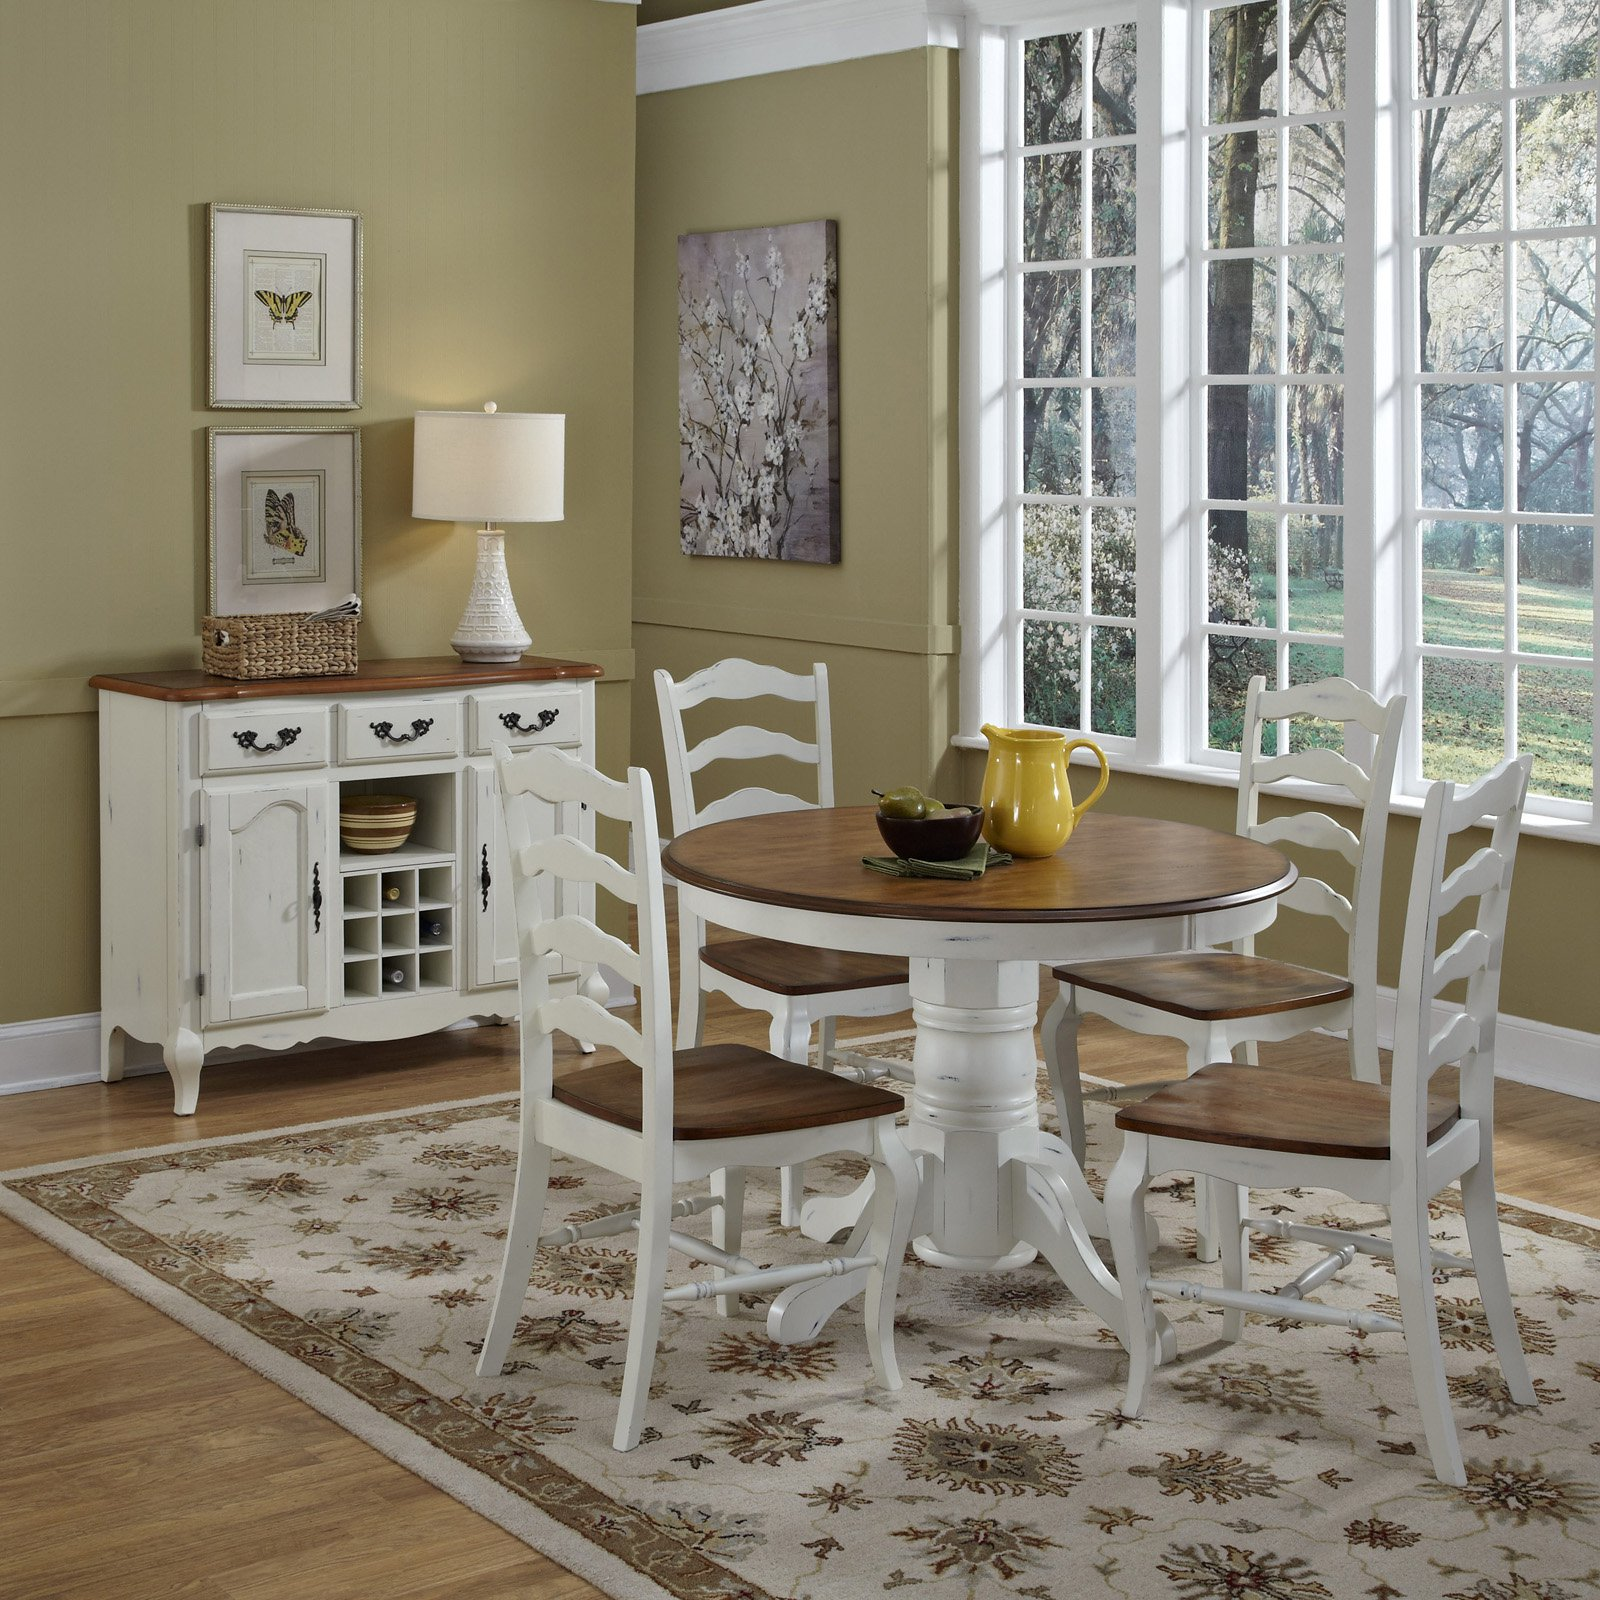 Home Styles French Countryside 5 Piece Dining Set, Off White   Walmart.com